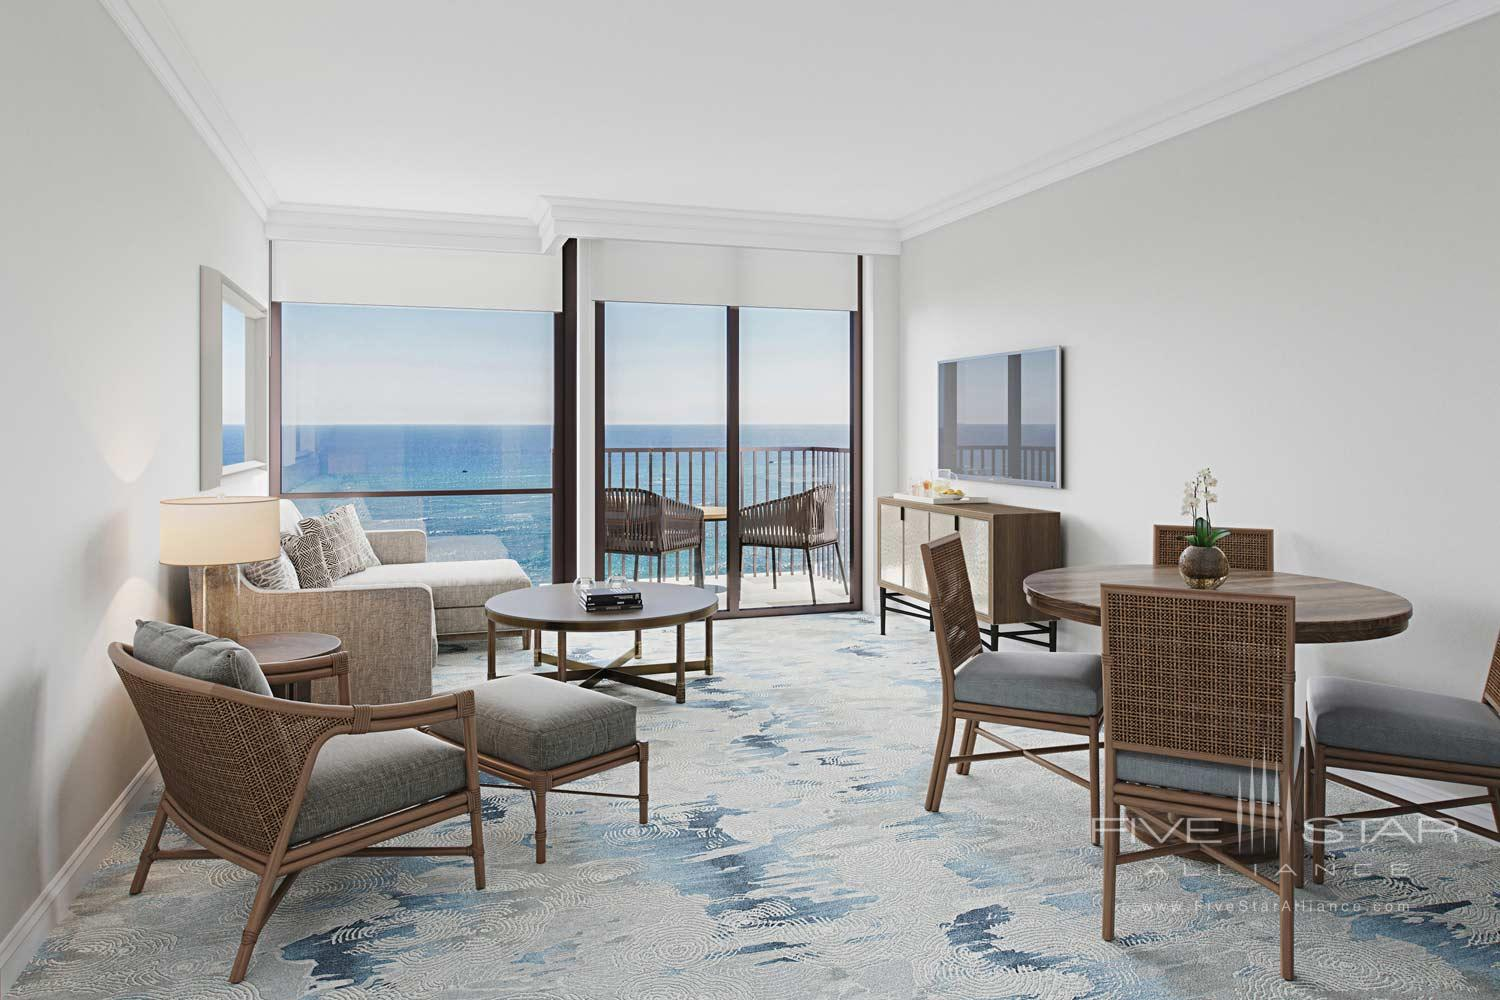 Ocean Suite Living Room at Halepuna Waikiki, Honolulu, United States